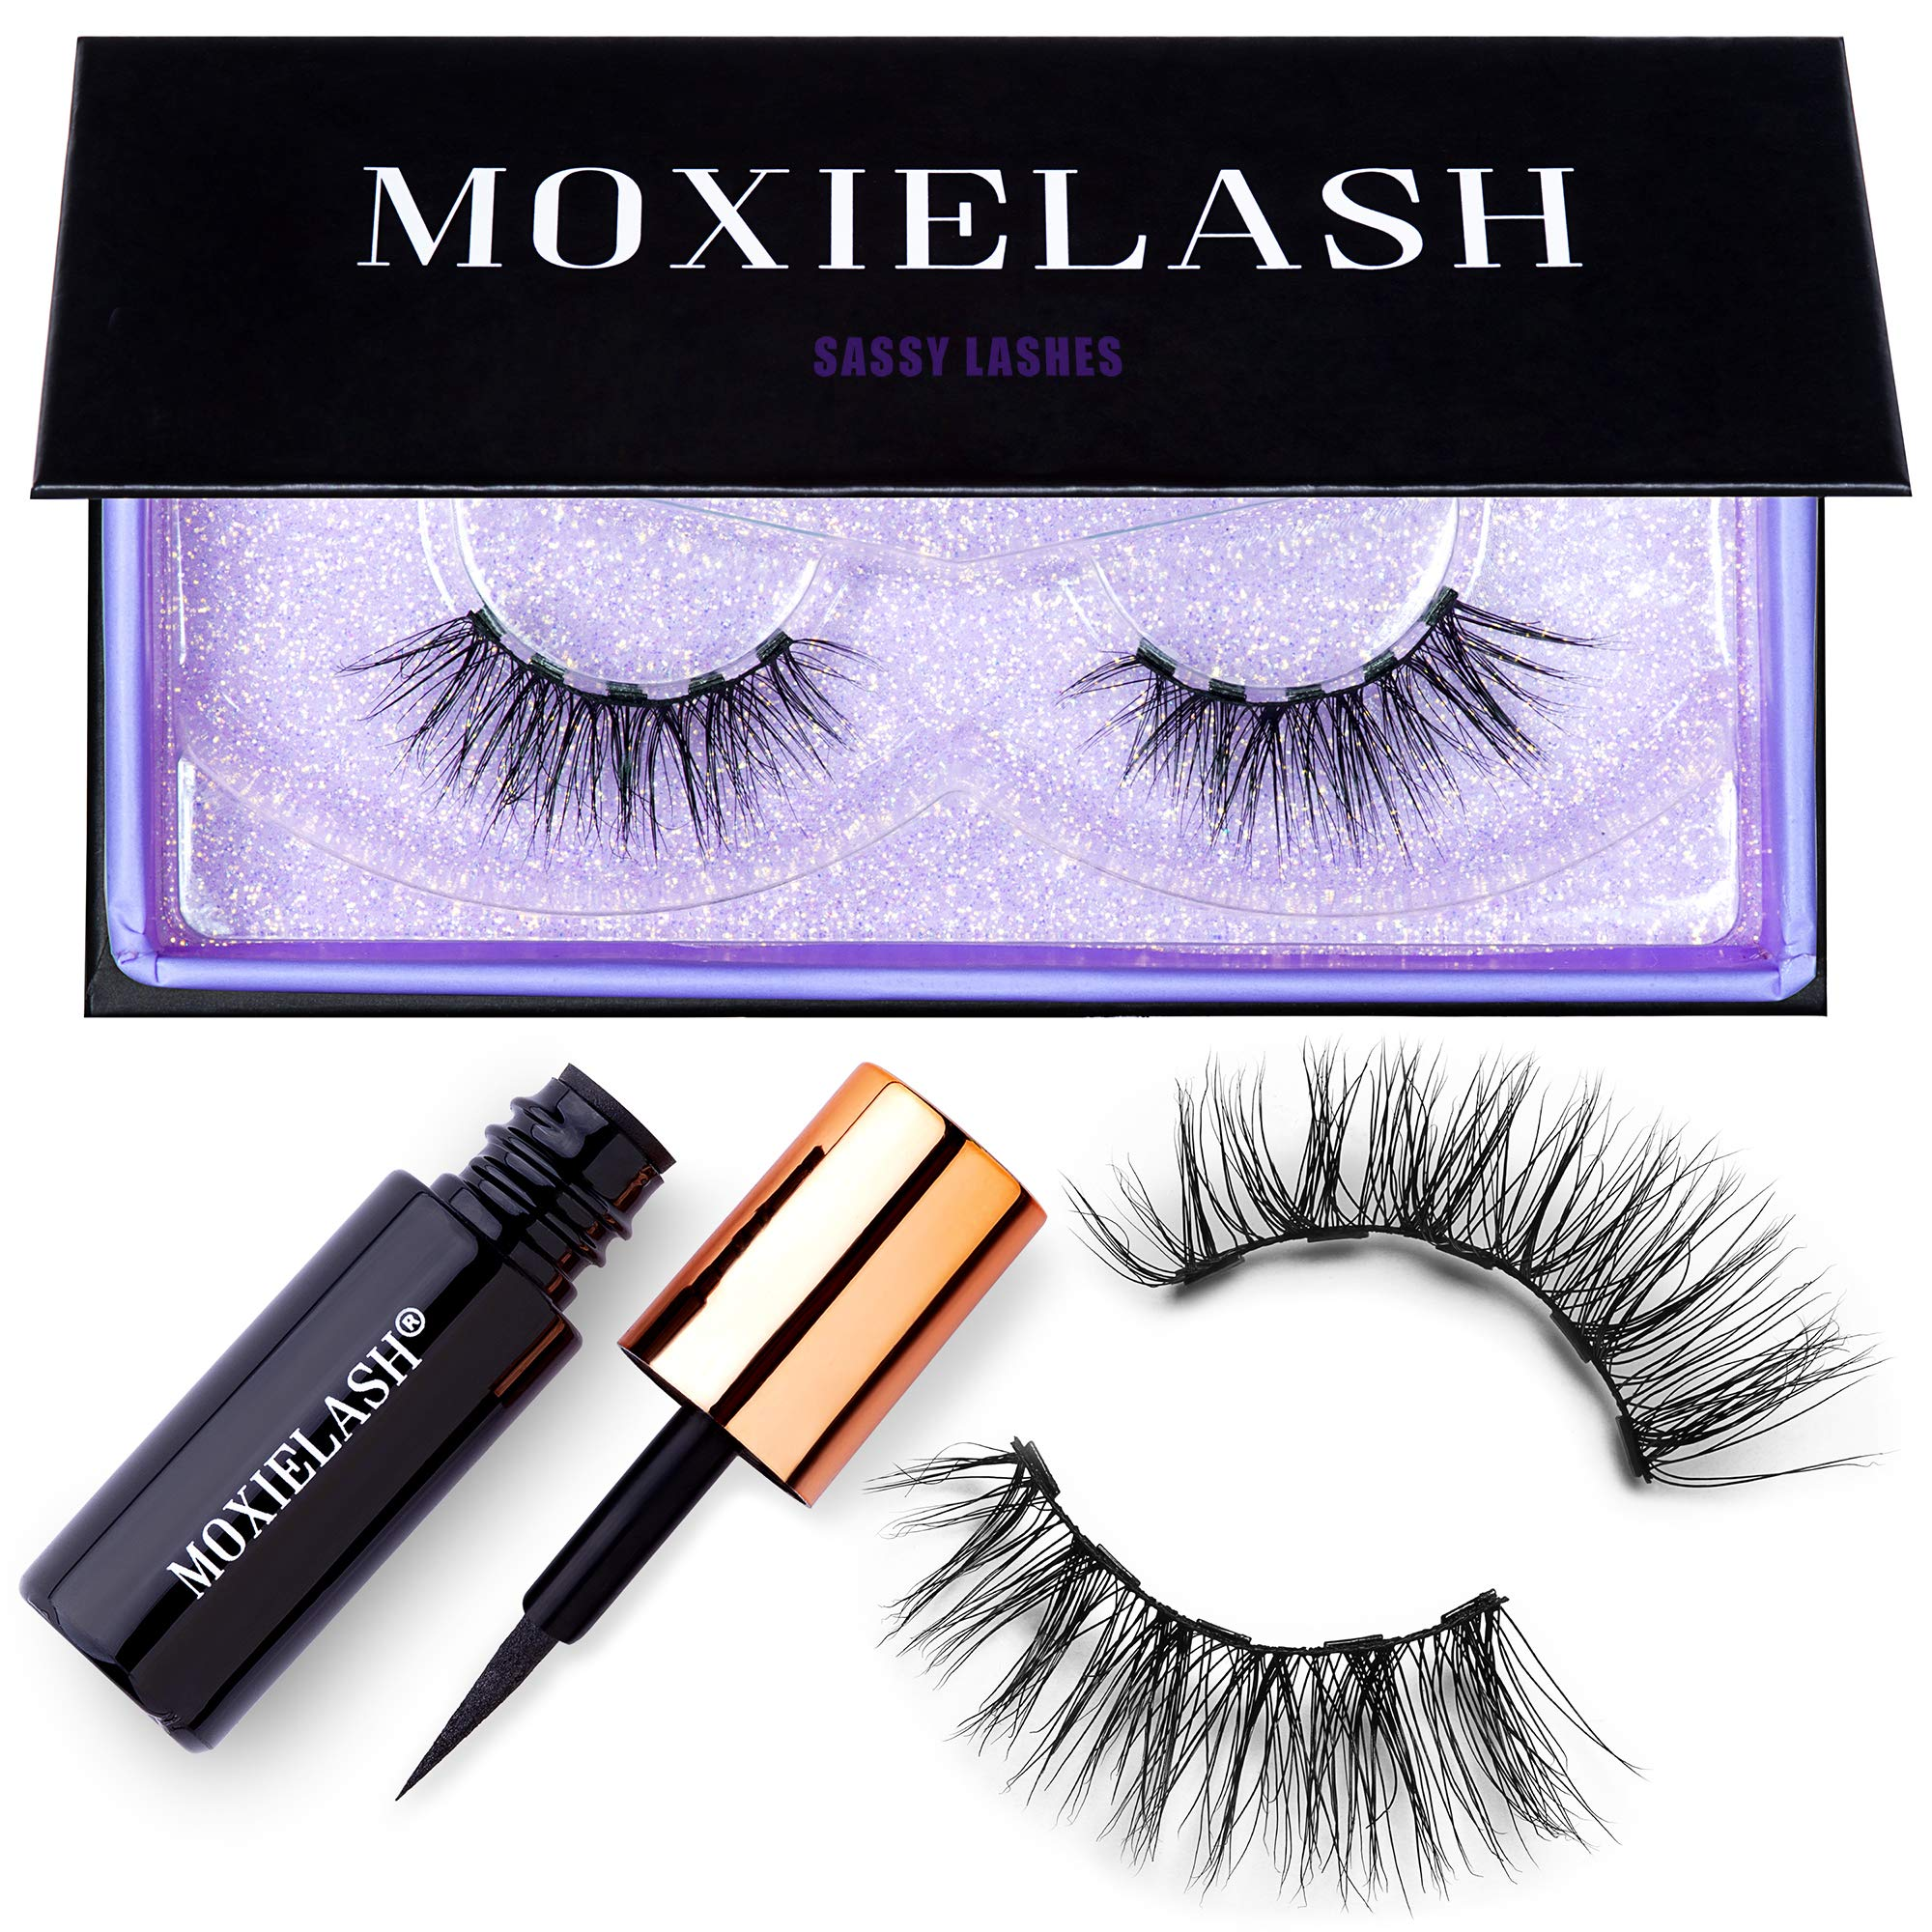 MoxieLash Sassy Kit - Mini Liquid Magnetic Eyeliner for Magnetic Eyelashes - No Glue & Mess Free - Fast & Easy Application - Set of Classy Lashes & Instruction Card Included by MoxieLash